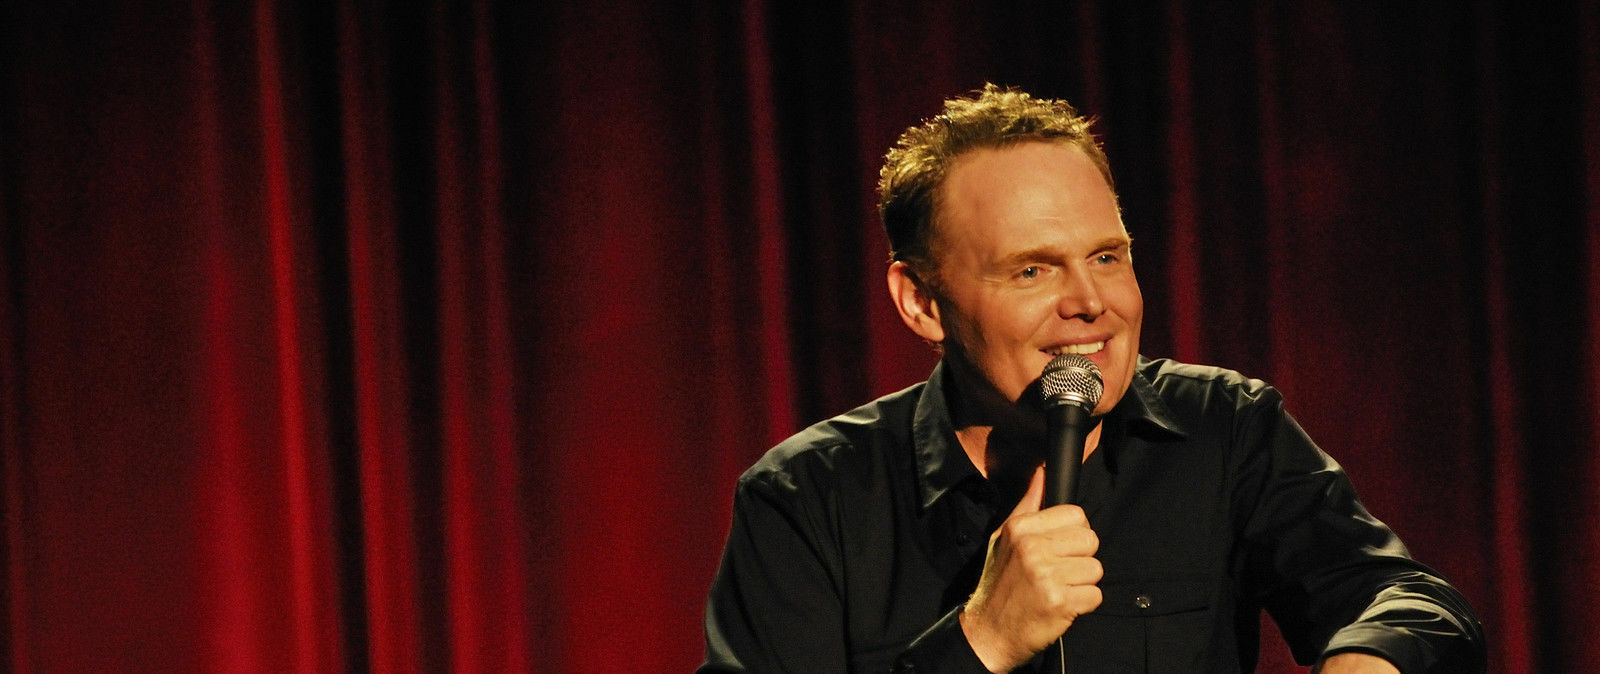 Bill Burr Tickets (Rescheduled from December 10)